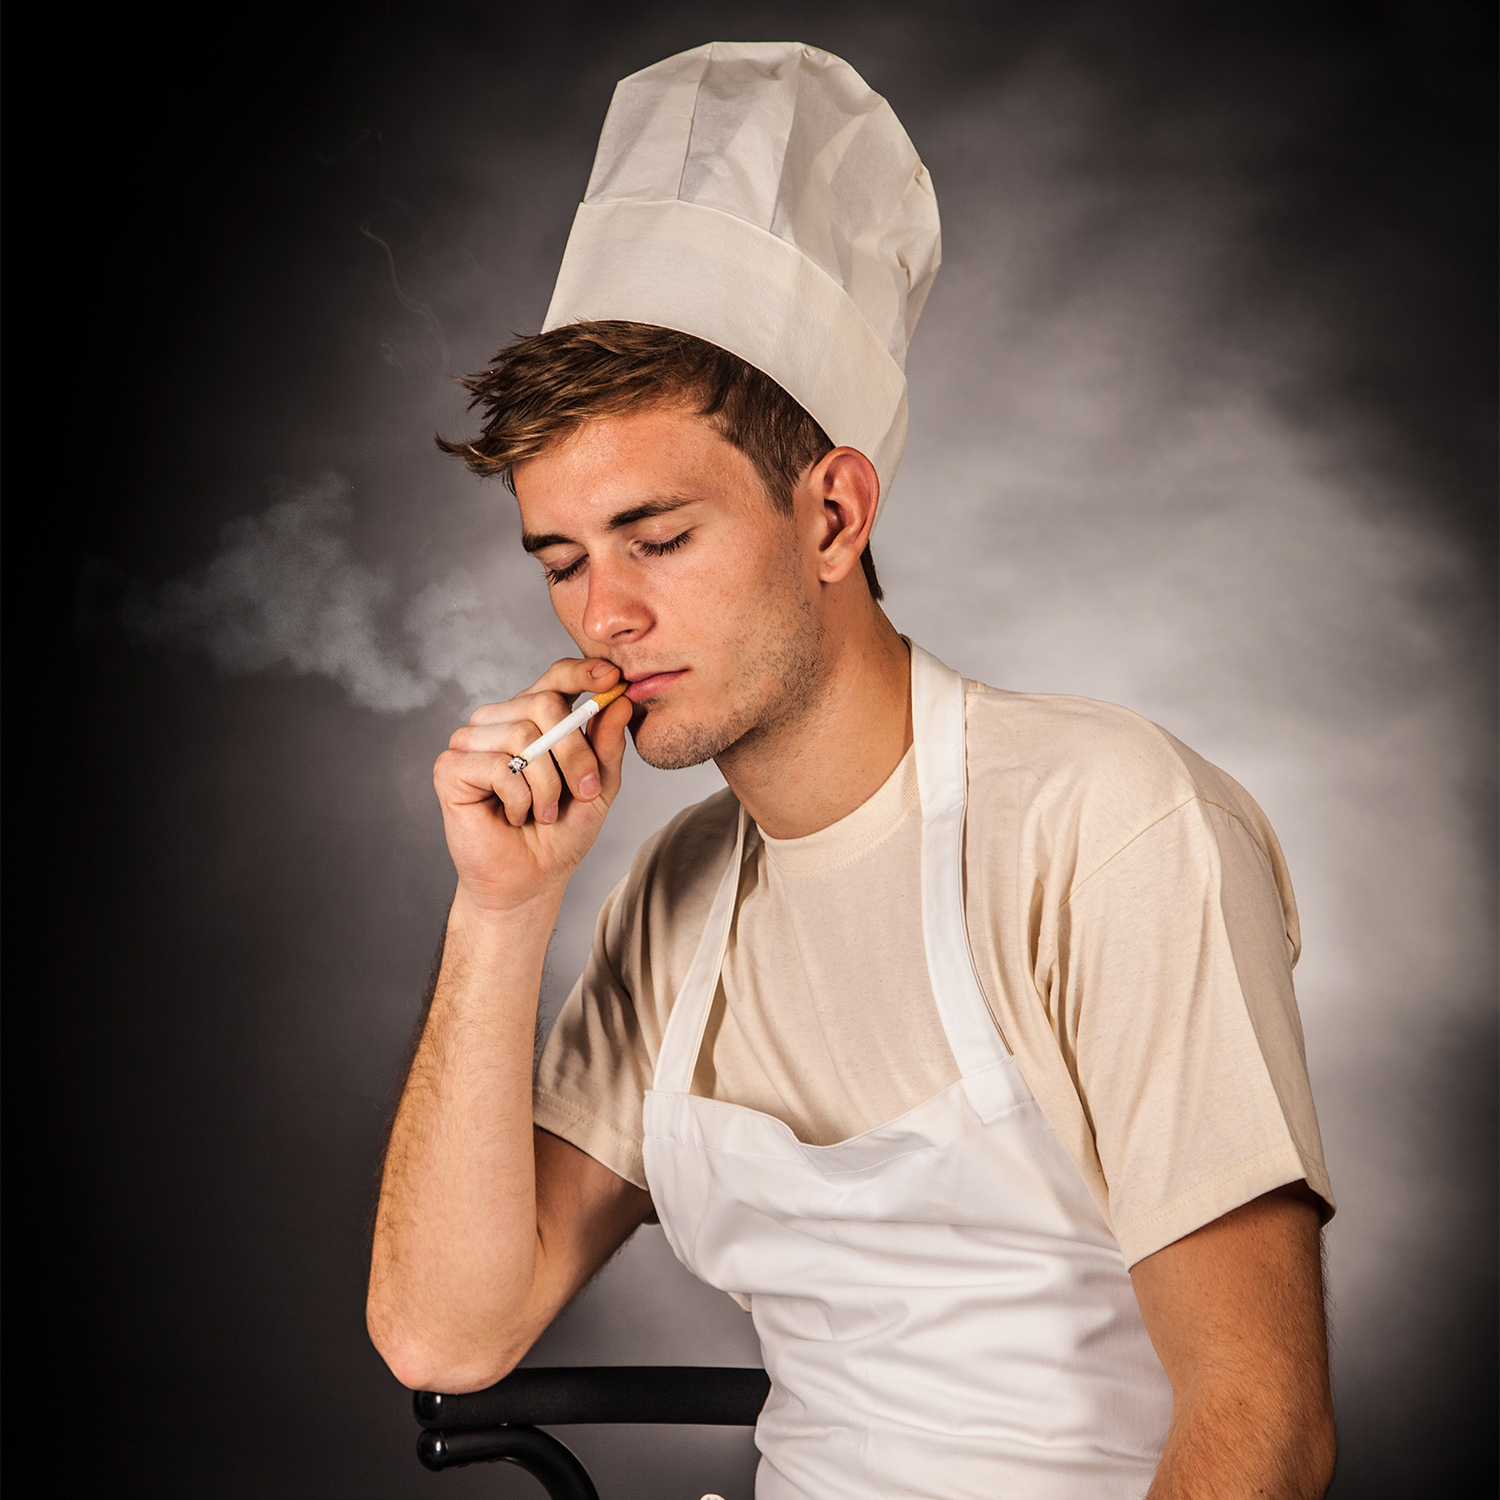 chef_cigarette_smoking_cook_inlinephotography_square.jpg